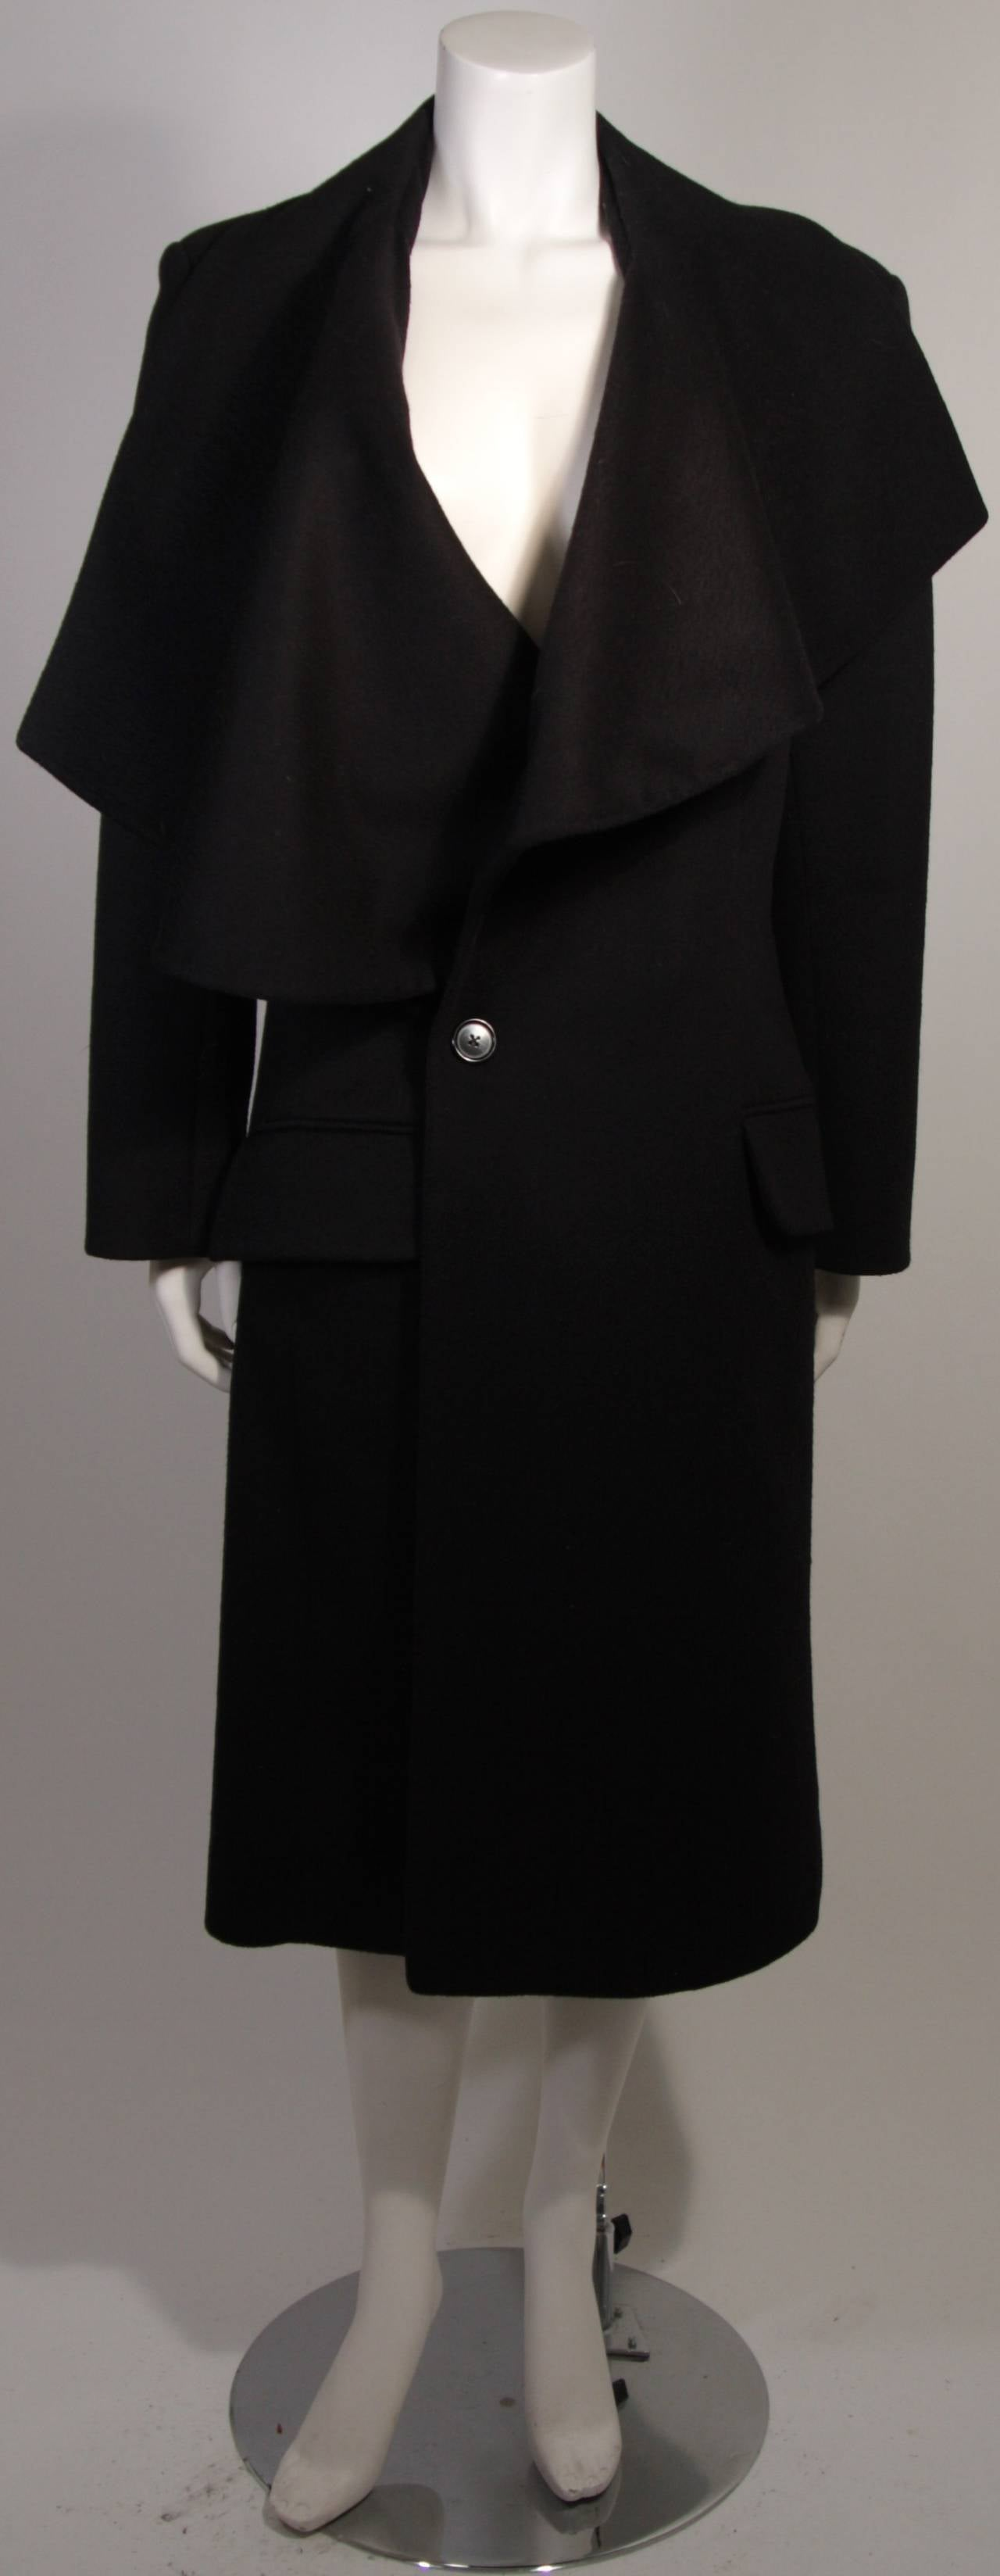 This is a John Galliano coat. The striking coat features an abstract over size collar.  90% wool and 10% nylon and the lining is 100% silk.  The front closure buttons are made of horn and we assume were originally sewn on with silk buttonhole